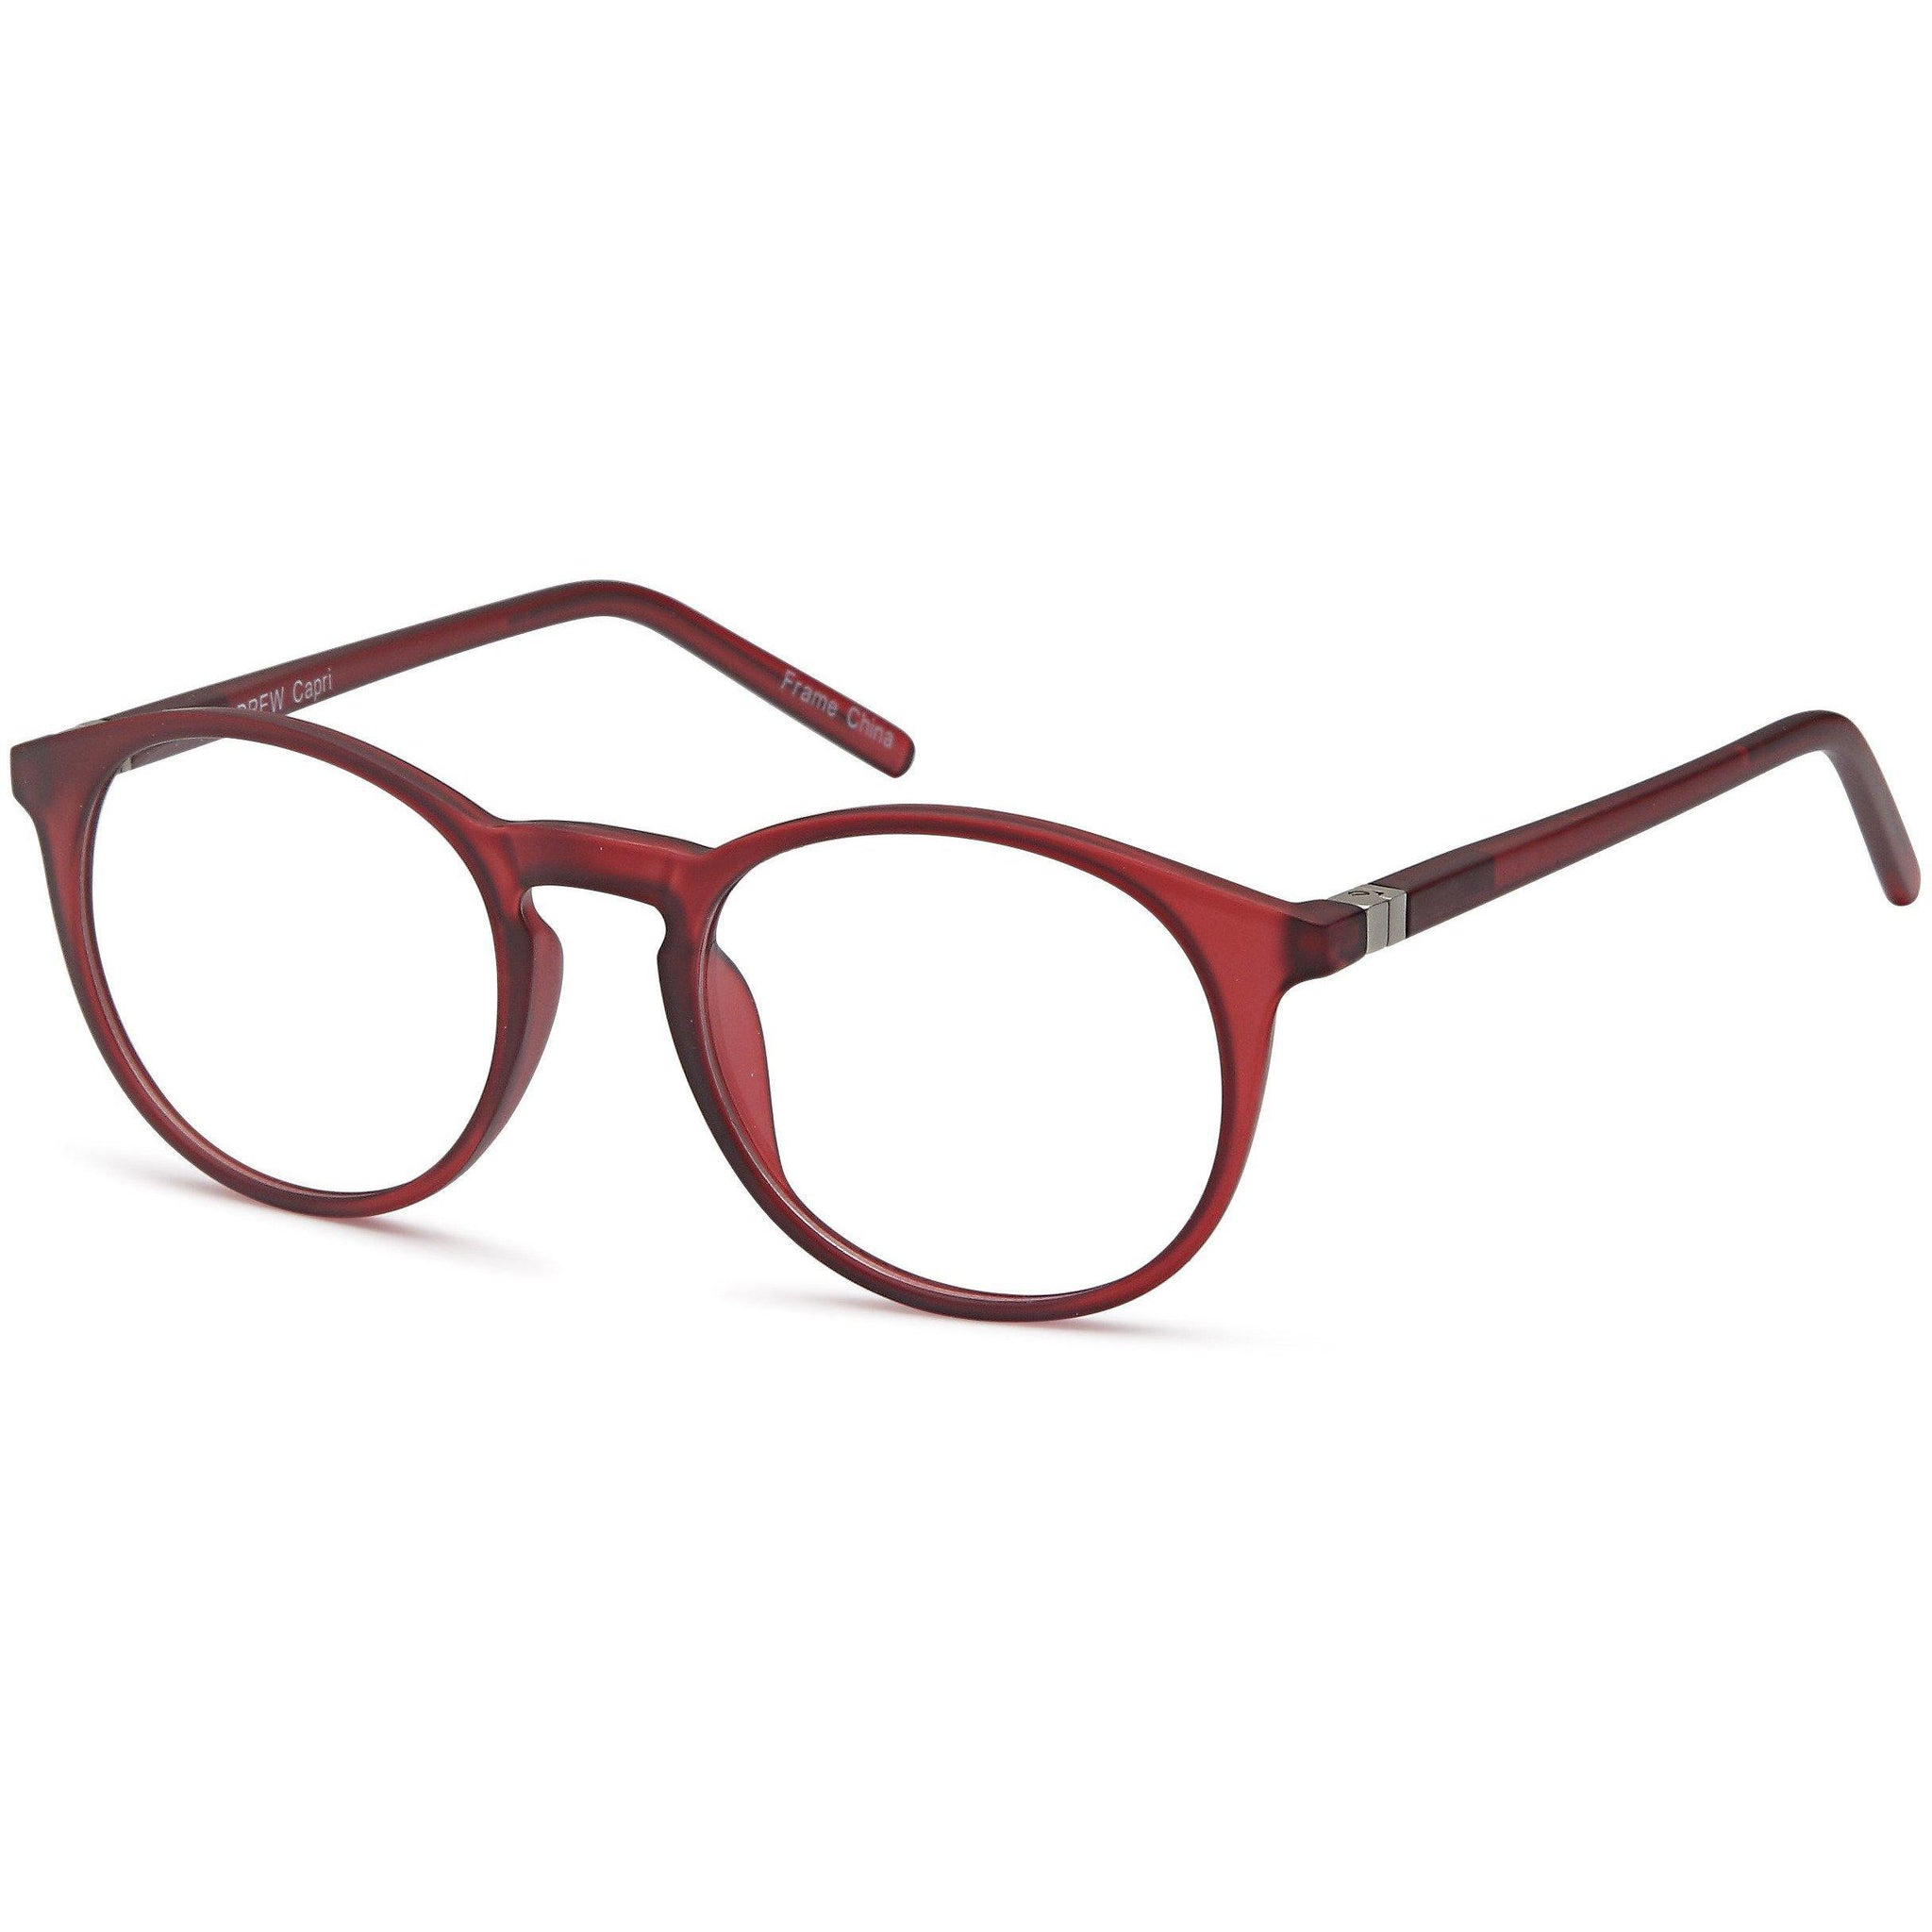 The Icons Prescription Glasses DREW Eyeglasses Frame